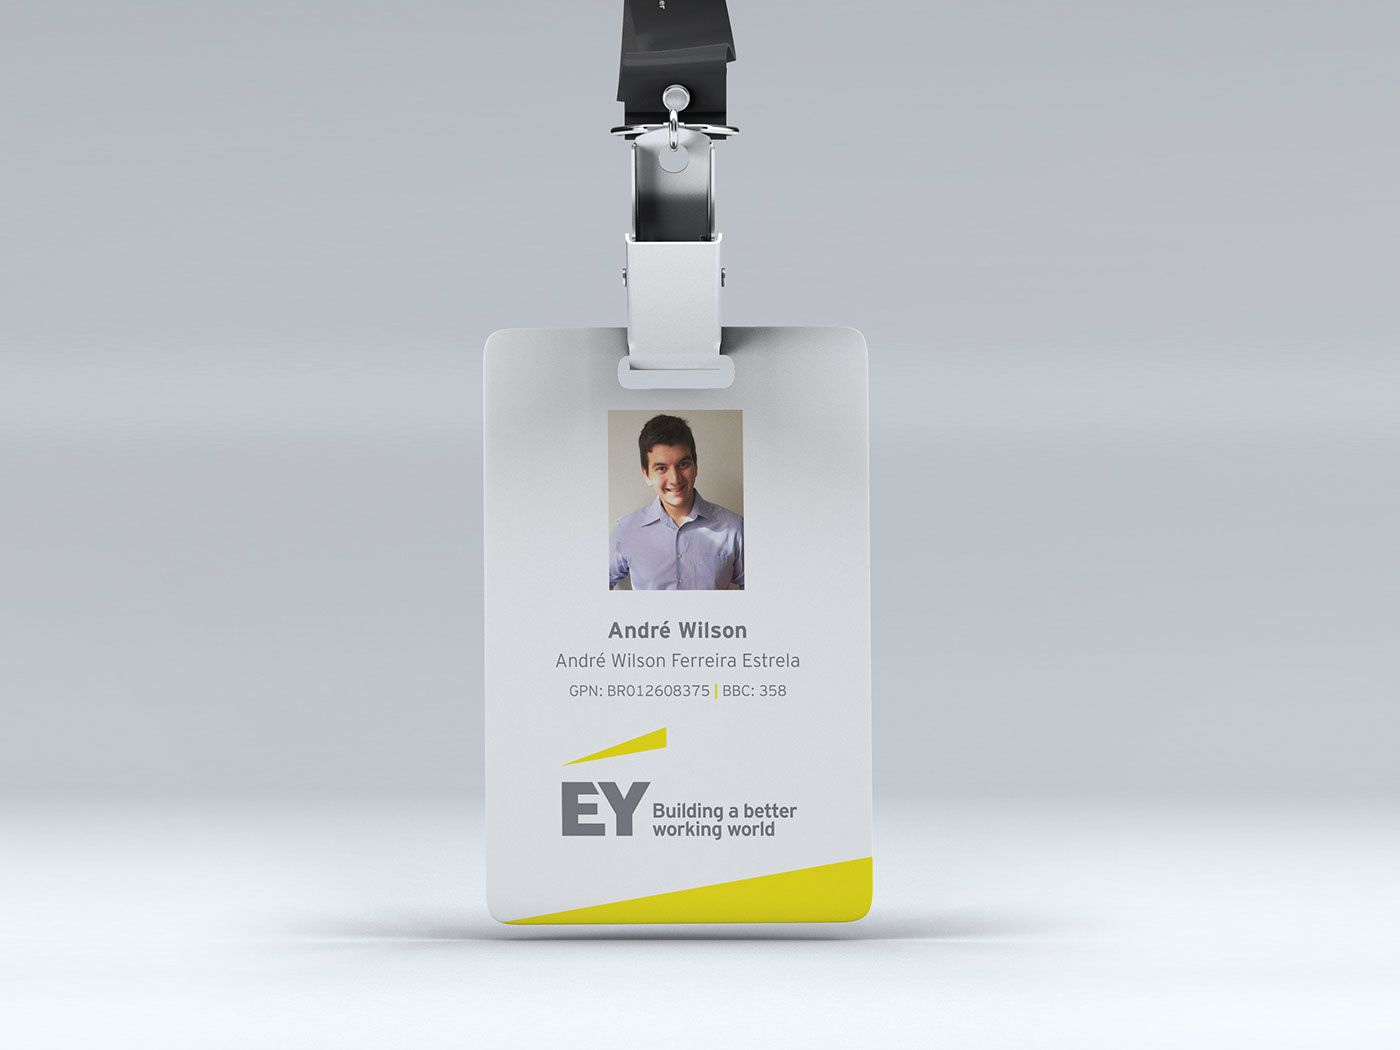 Pin by fajar darmawan on id card | Pinterest | Badges, Behance and ...